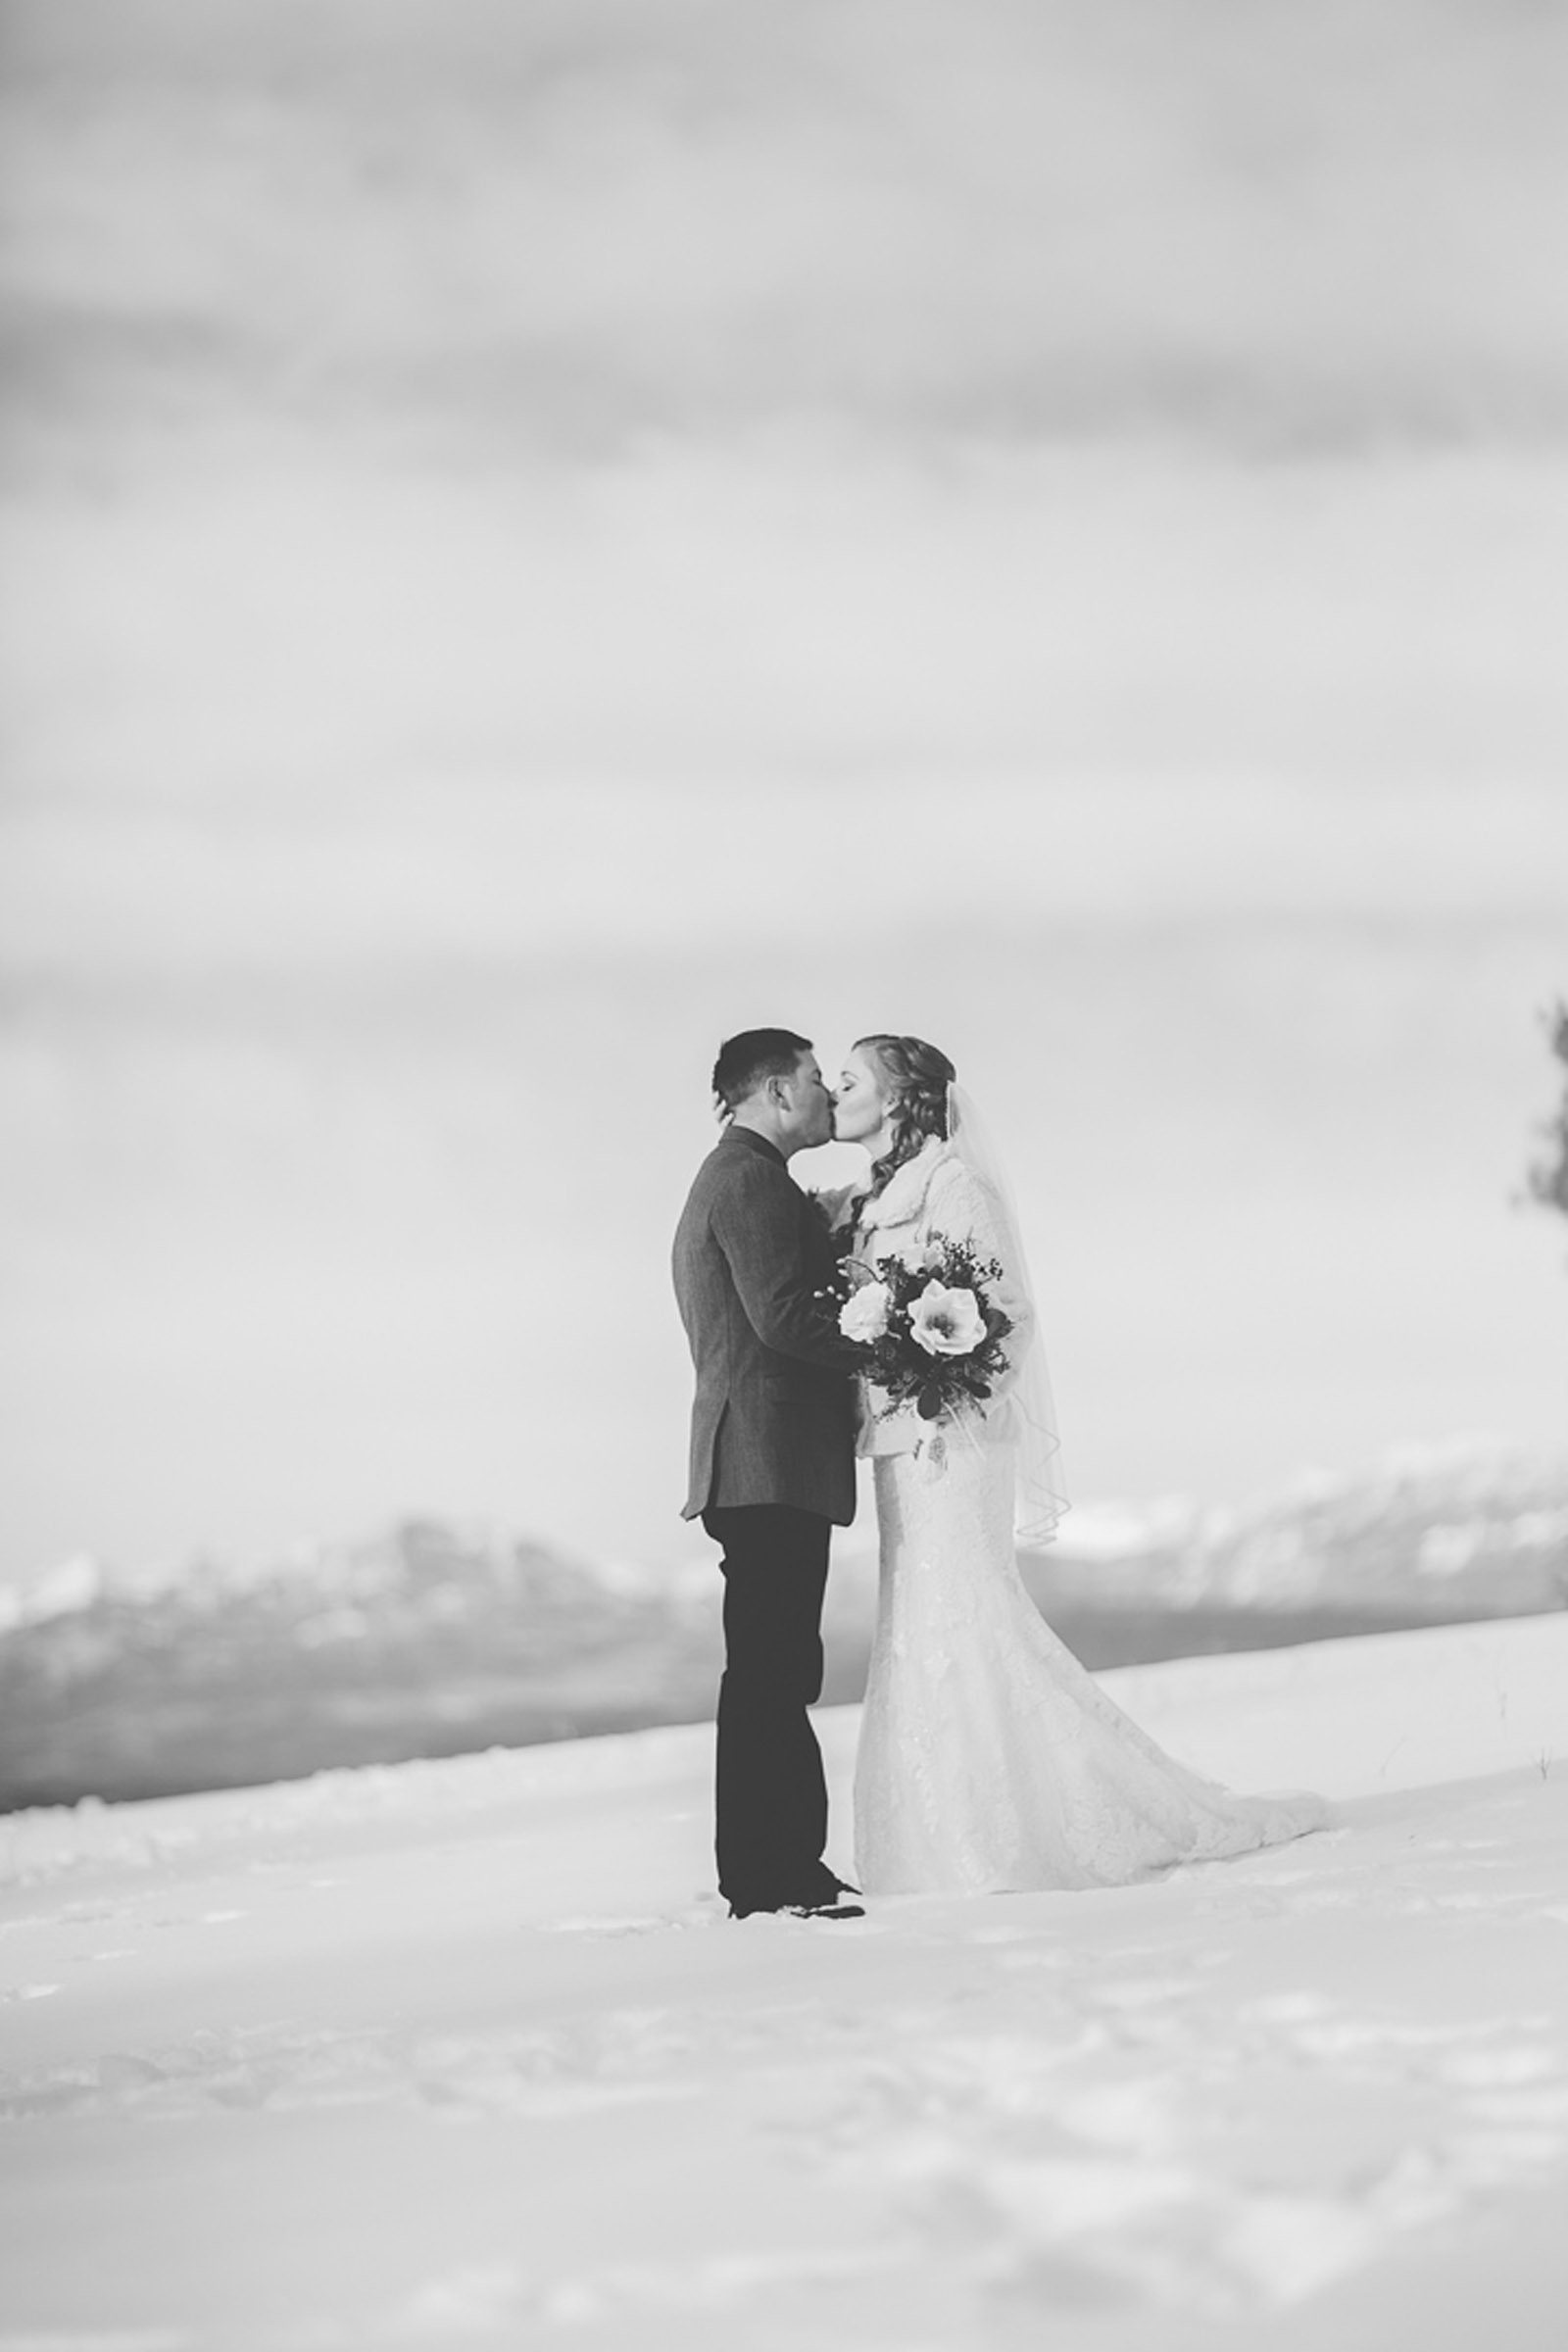 139-wedding-photographer-captures-newlyweds-in-snow-during-a-winter-snow-wedding-in-the-mountains-in-colorado